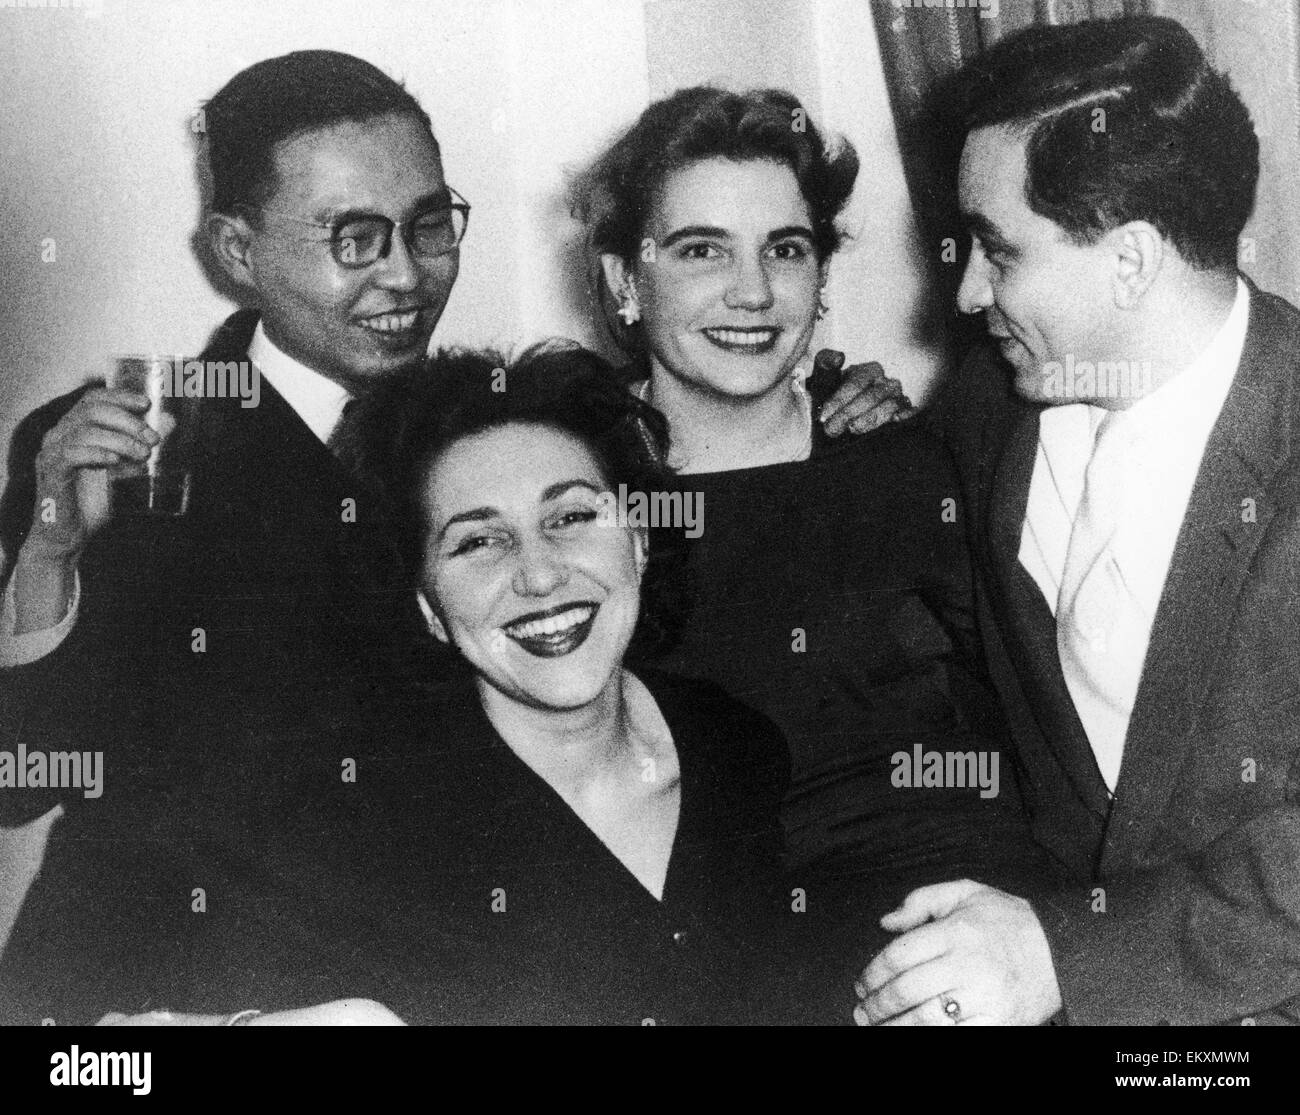 Russian spy Gordon Lonsdale with friends. Portland Spy Ring. 1961 - Stock Image